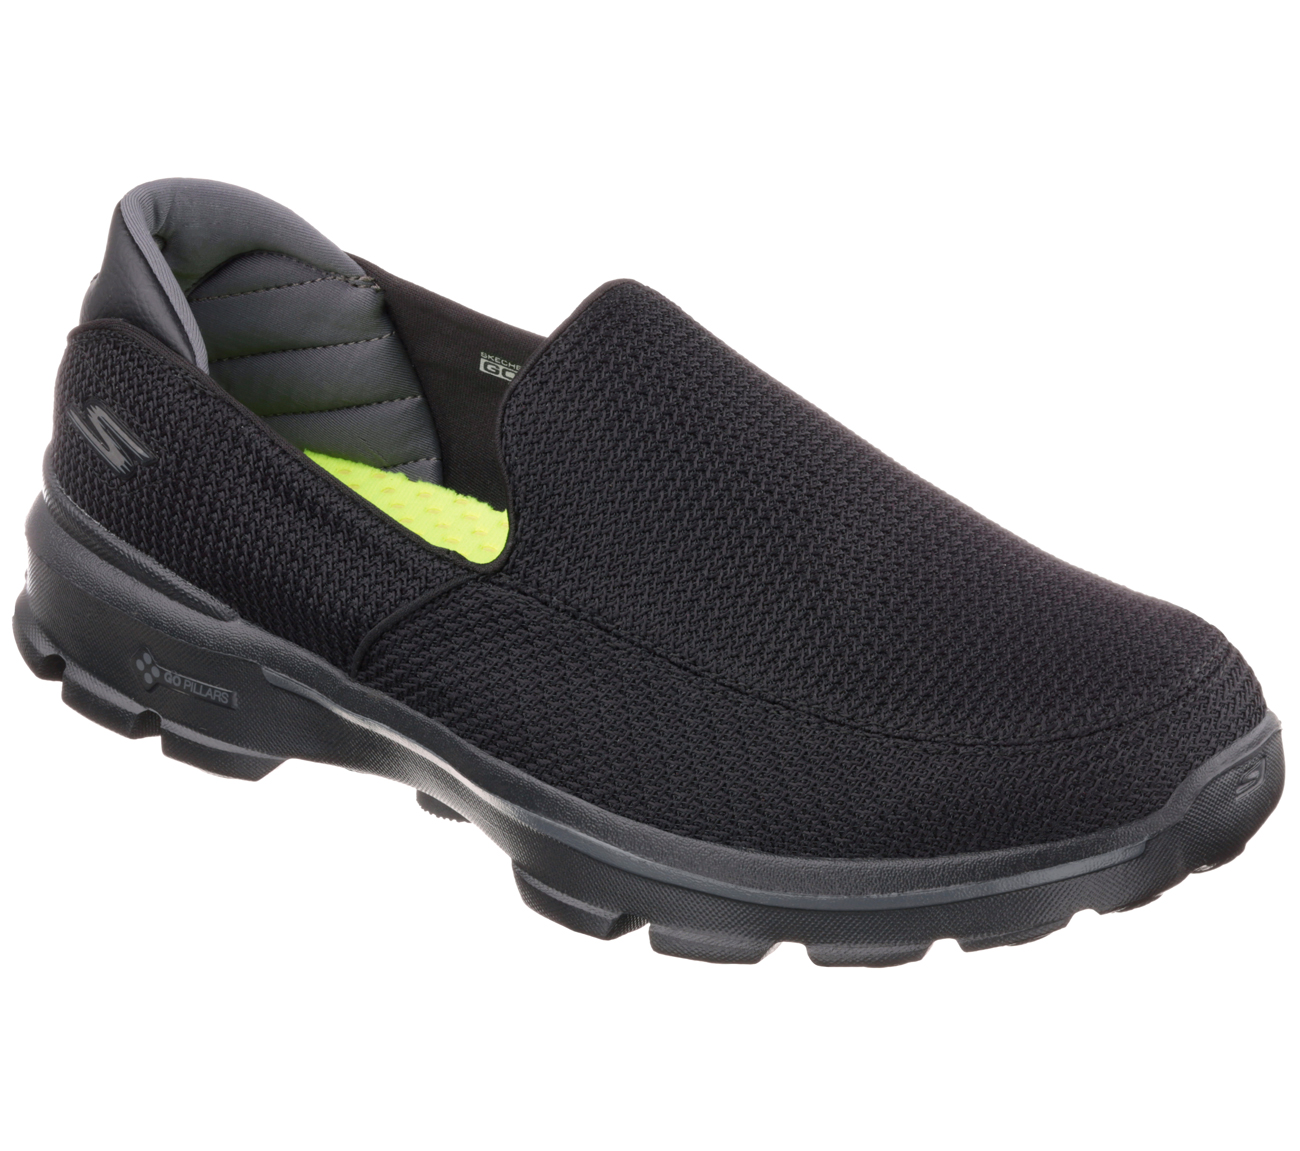 Shop Quality Shoes - thritingetfc7.cf Size UK Purple, Black Skechers Bbk Shoes - Women Skechers Autumn/Winter Flats.